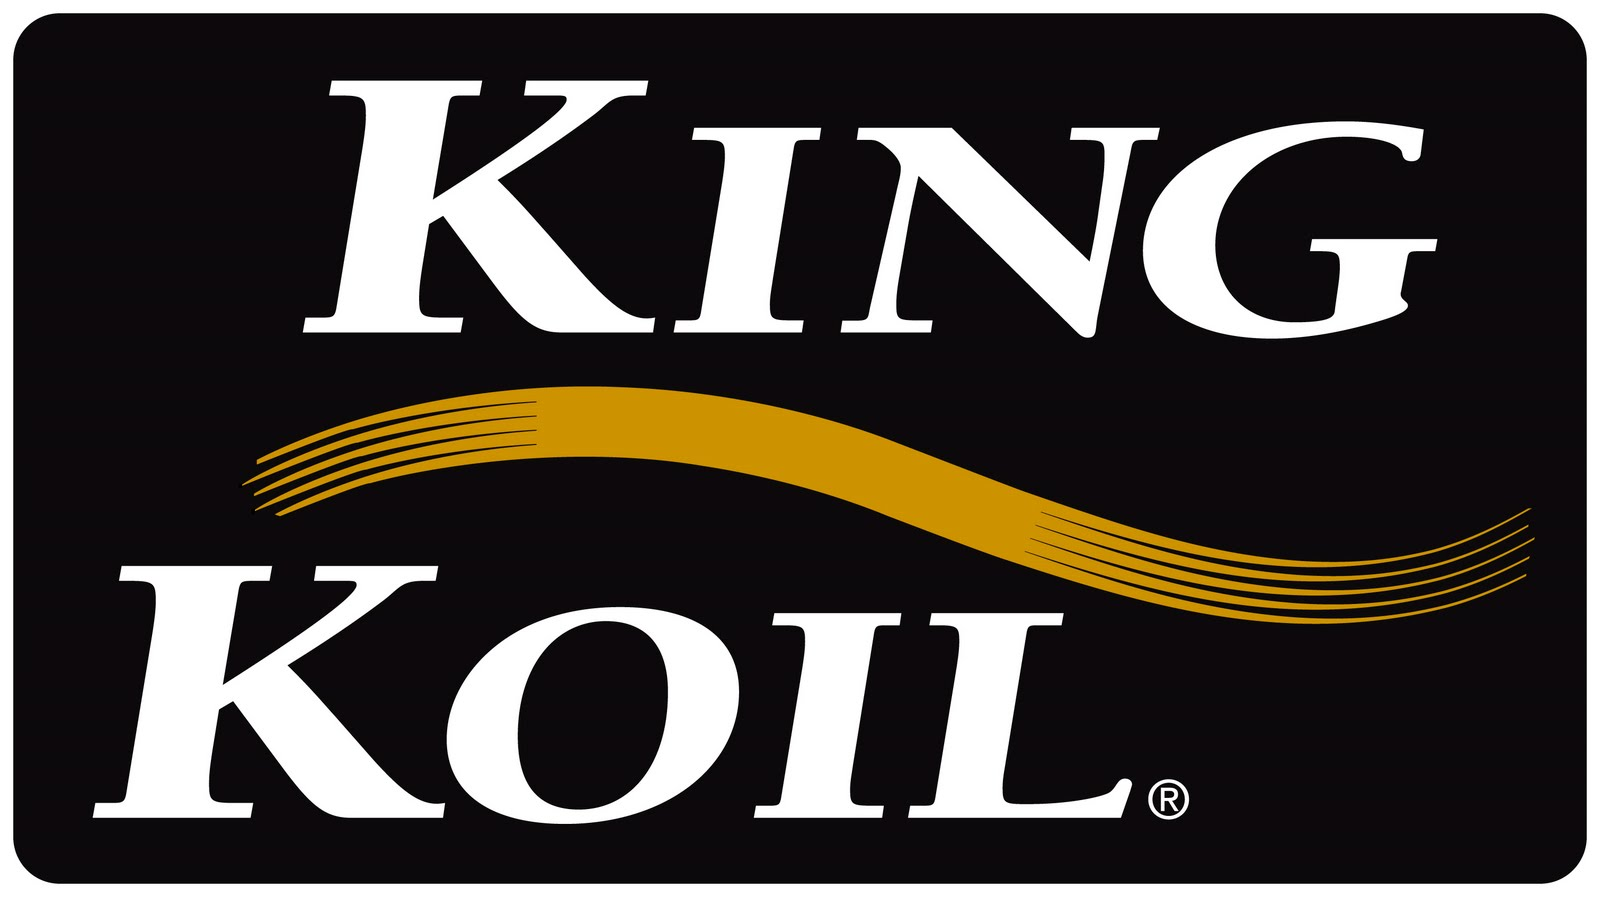 King Koil Mattresses Manufacturers Quality Prices Singapore